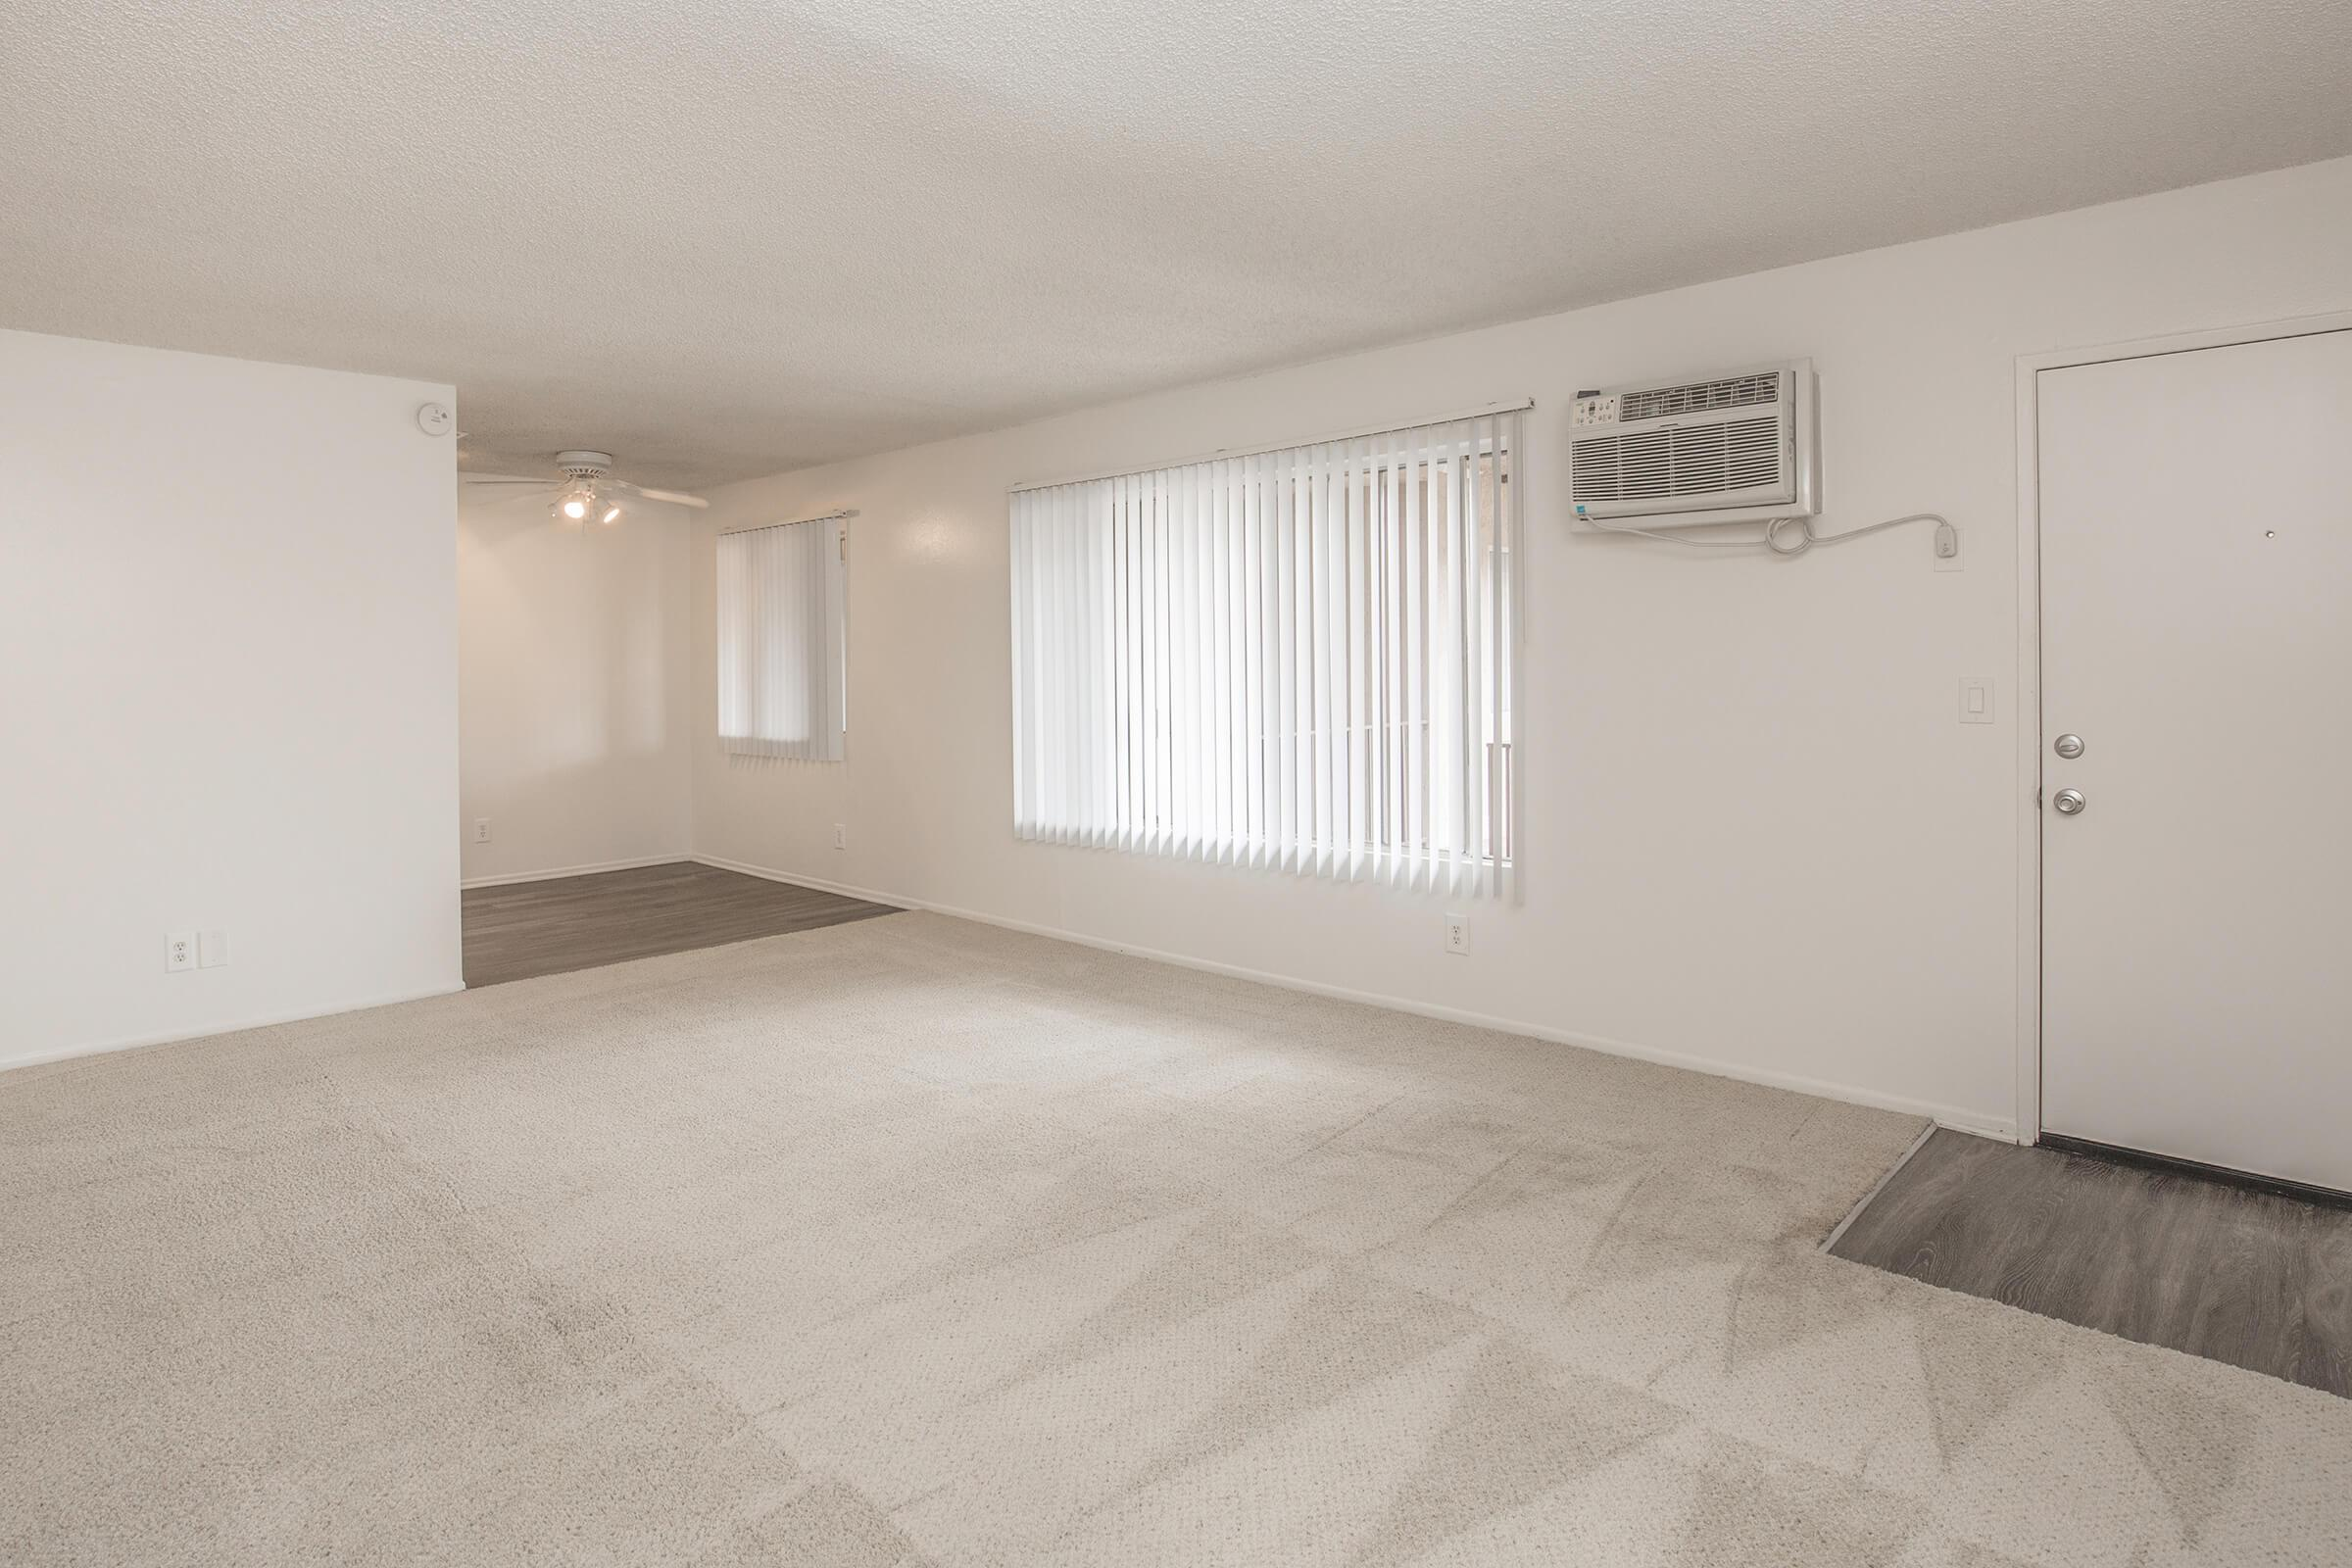 Unfurnished living room with front door